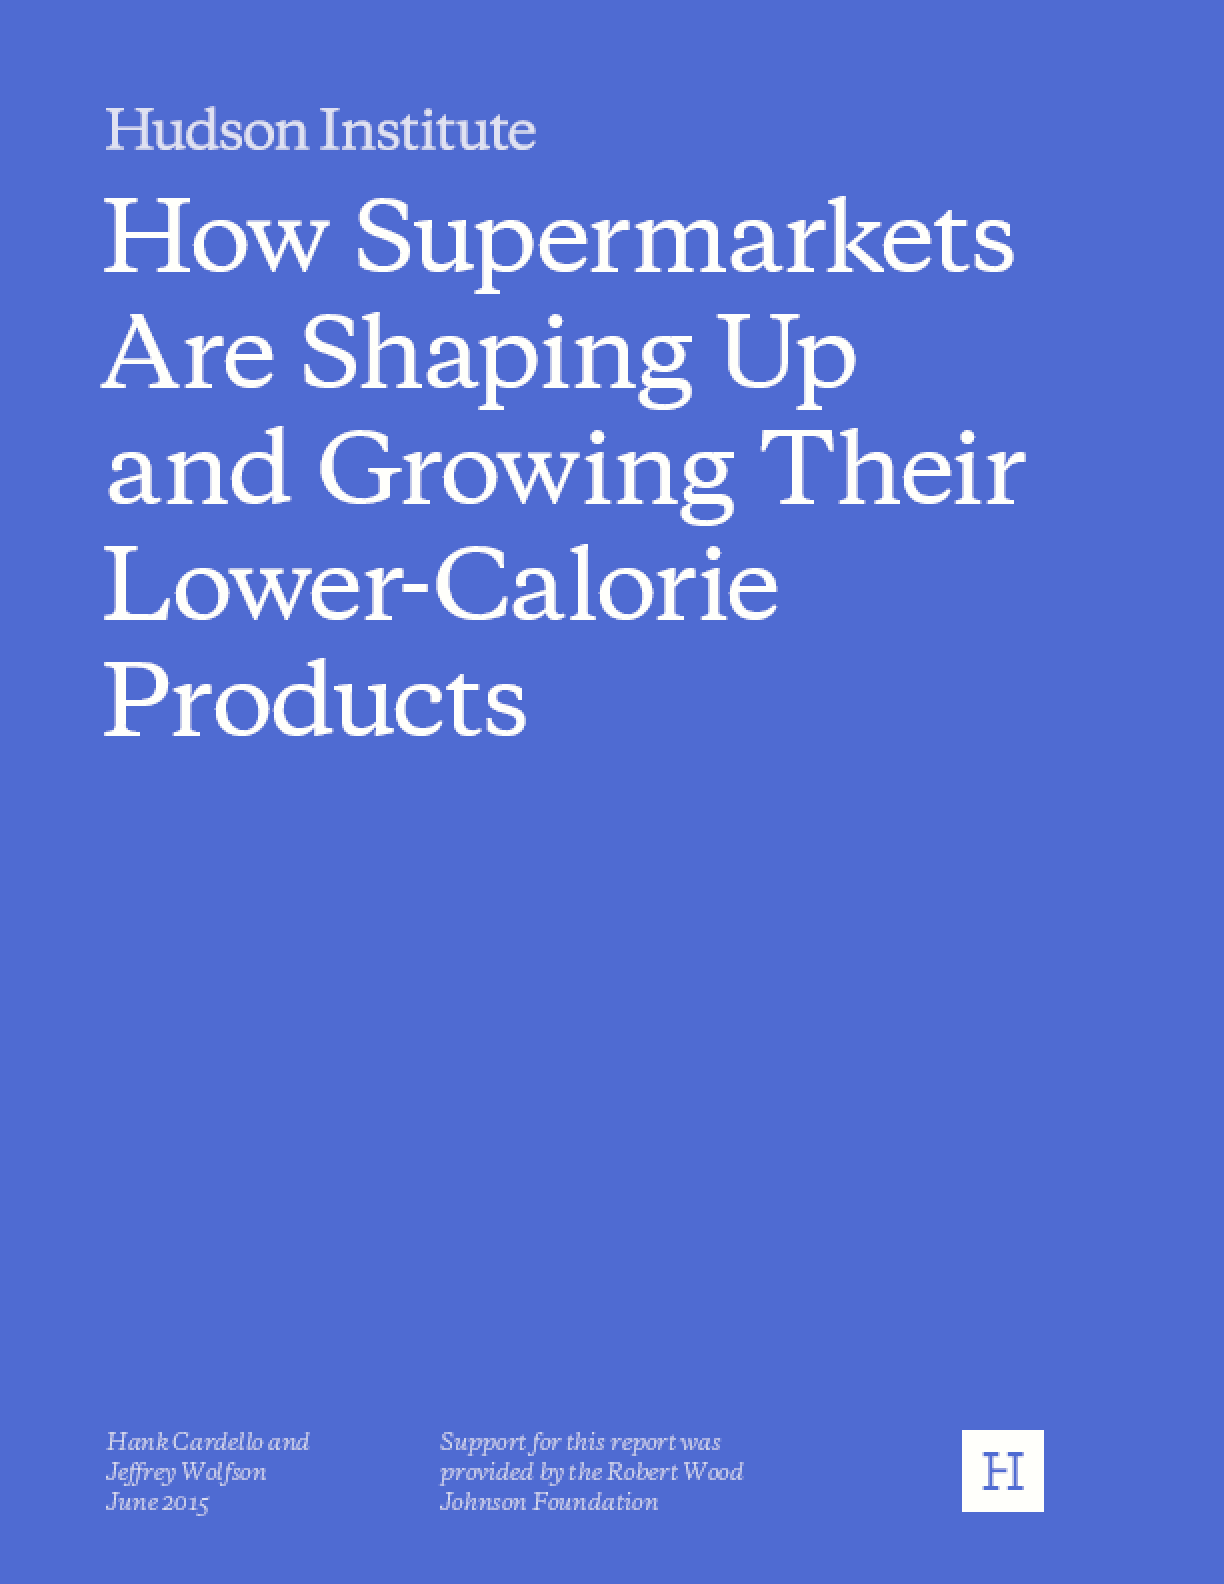 How Supermarkets Are Shaping Up and Growing Their Lower-Calorie Products